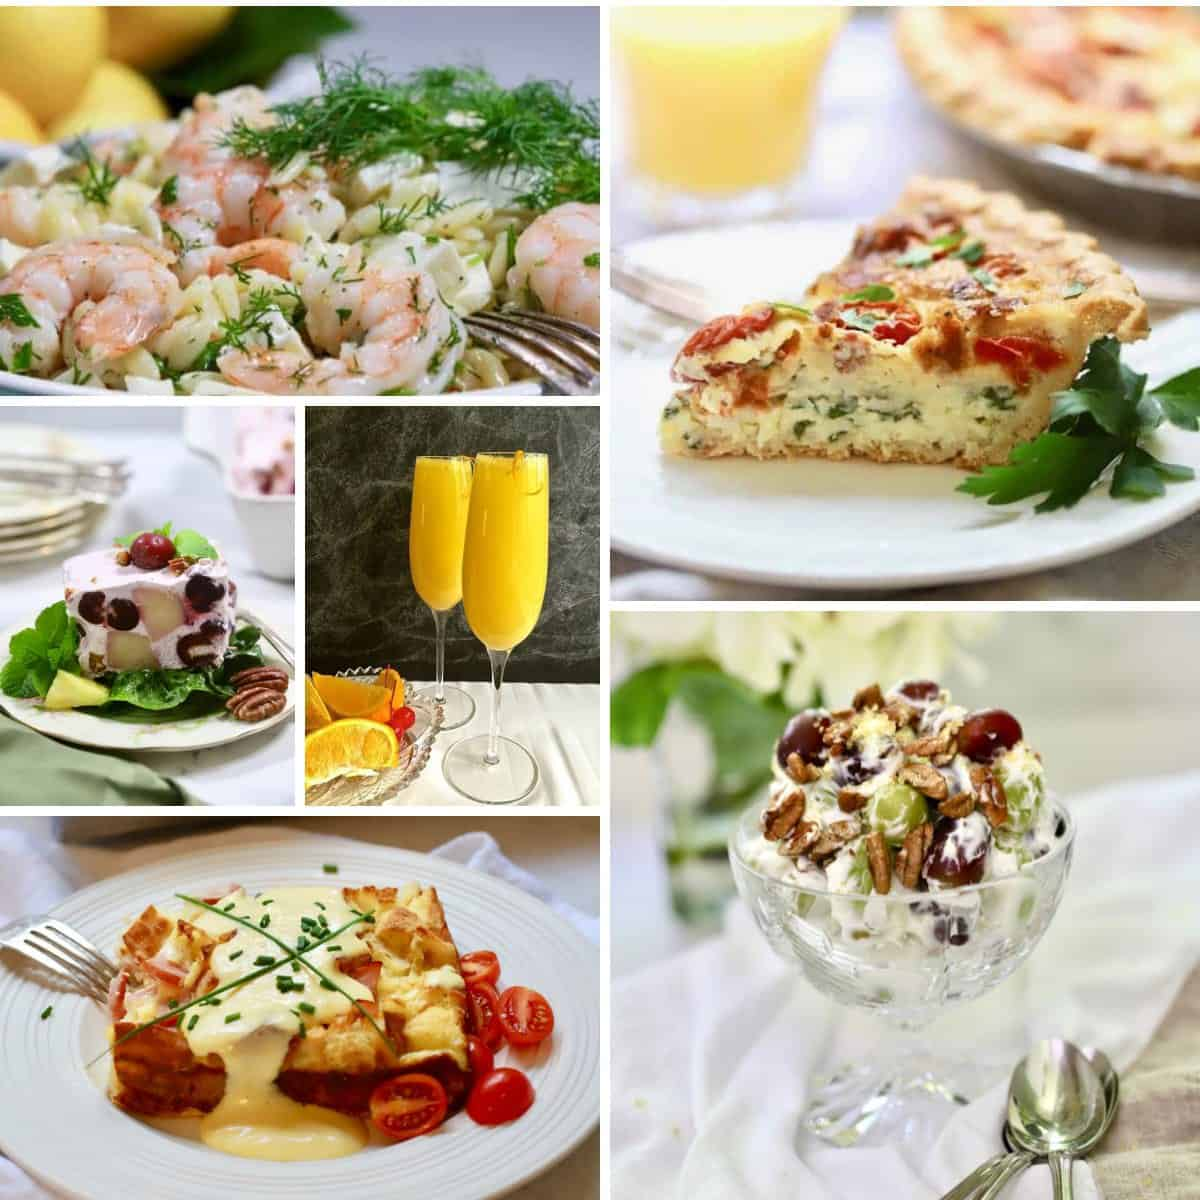 A collage of Mother's Day dishes including grape salad and quiche.